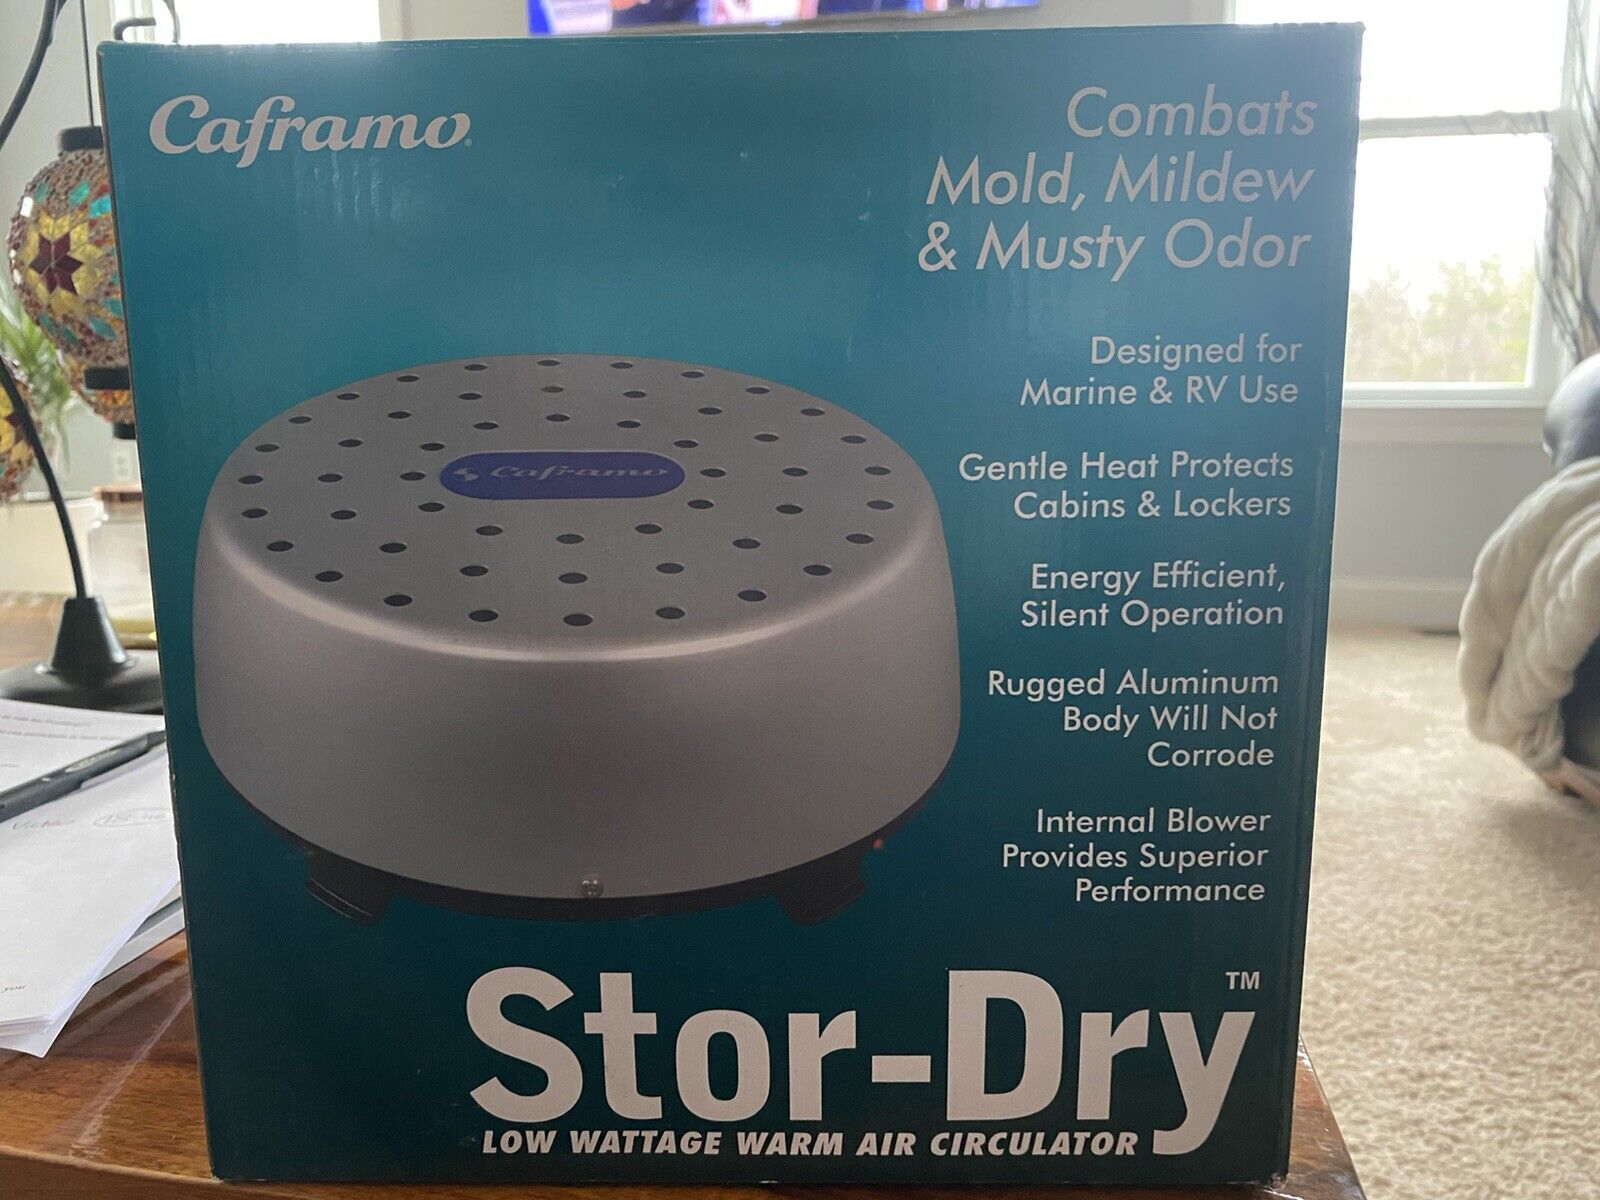 CAFRAMO STOR-DRY 110V WARM AIR CIRCULATOR DEHUMIDIFIER 75WATT